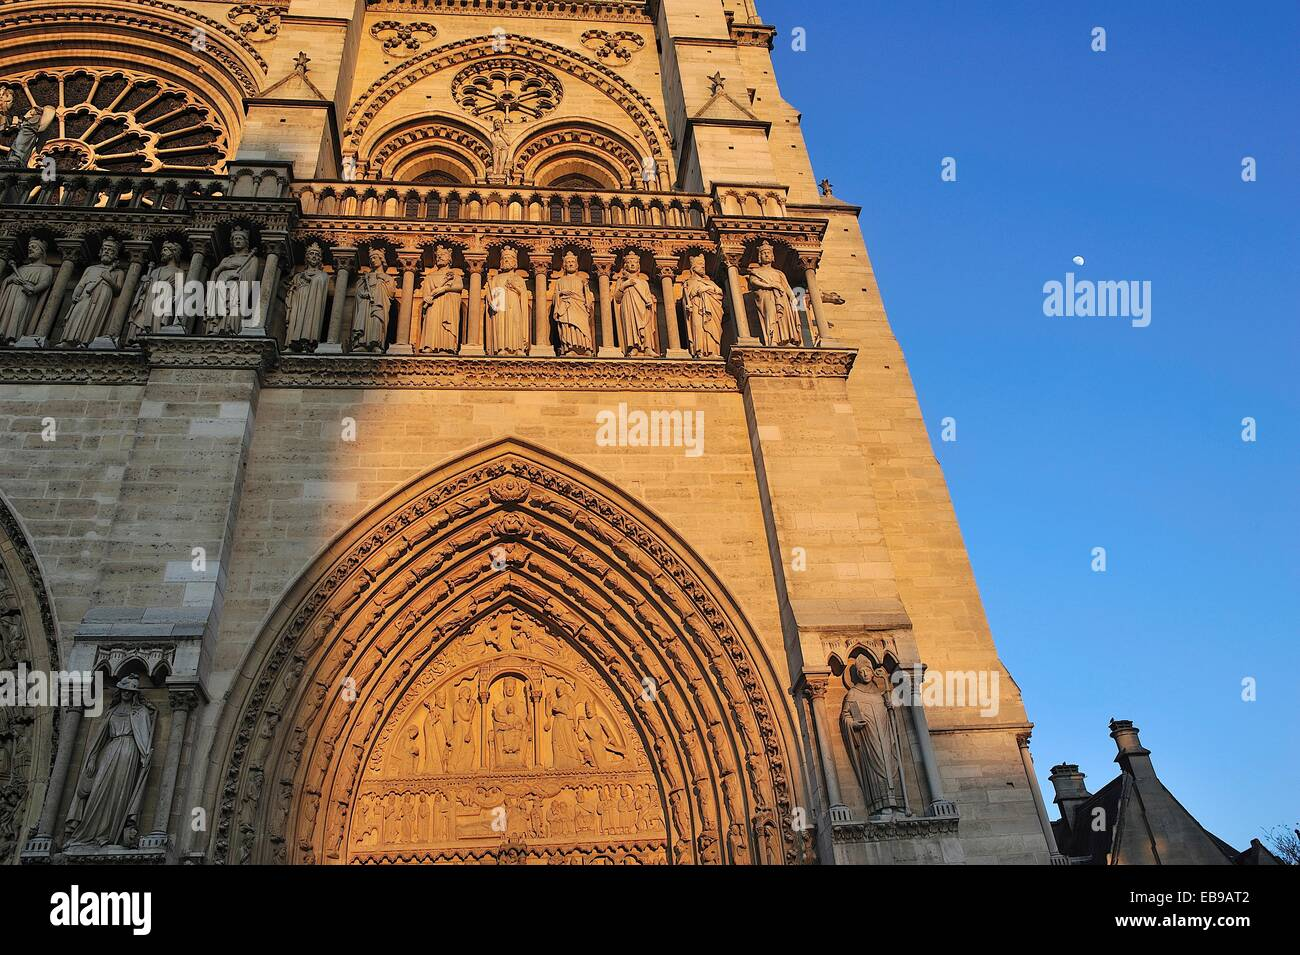 Notre Dame, at sunset, Portal of Saint Anne. Paris, France. Stock Photo